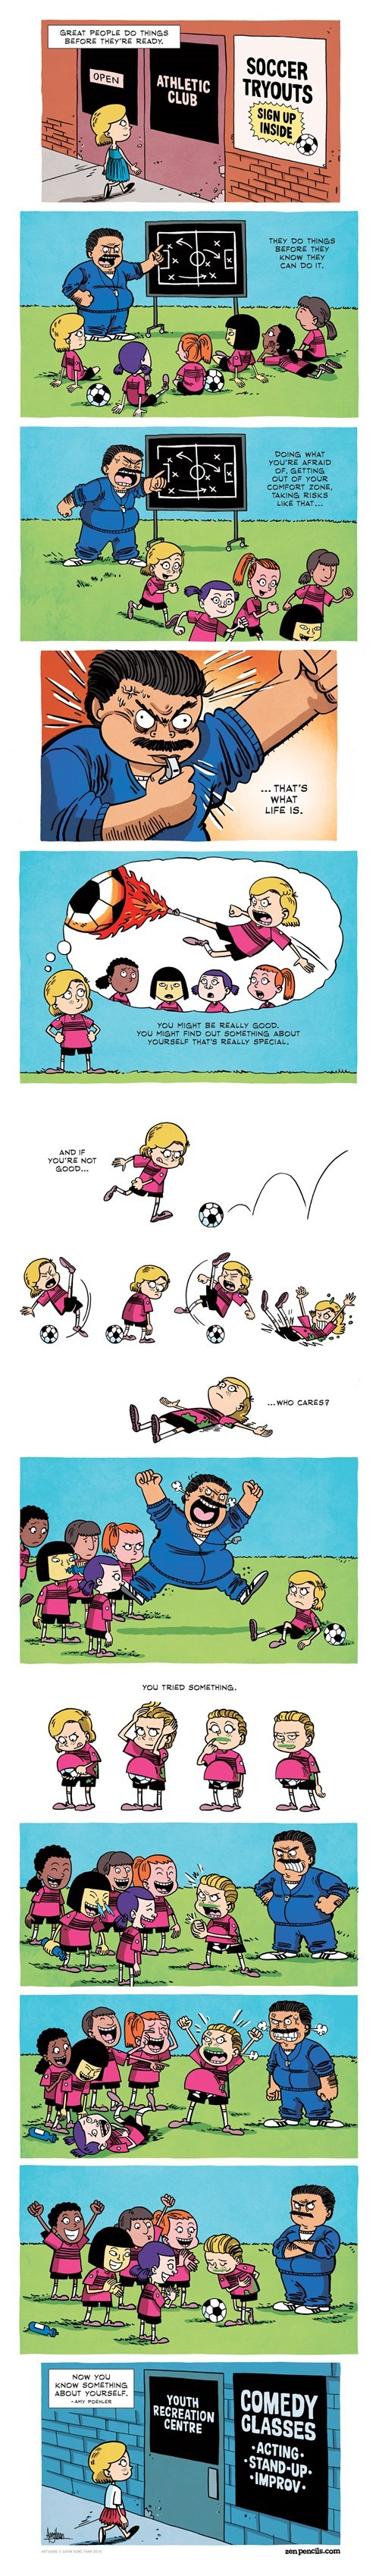 Amy Poehler,nice try,win,web comics